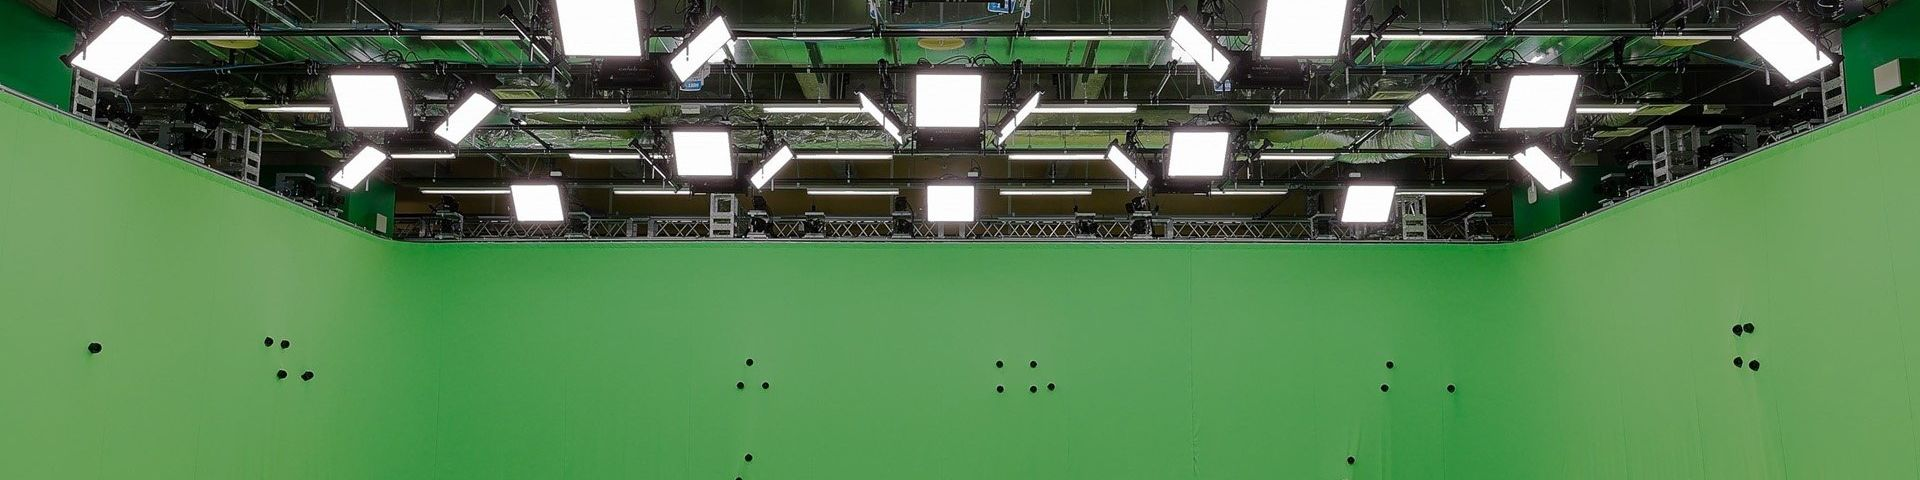 The ceiling and walls of the new Canon Volumetric Video studio in Kawasaki, Japan. The walls are green and have small, round black objects protruding from them at seemingly random positions and intervals. Above are more than two dozen flat square lights hanging from a rig below the ceiling.